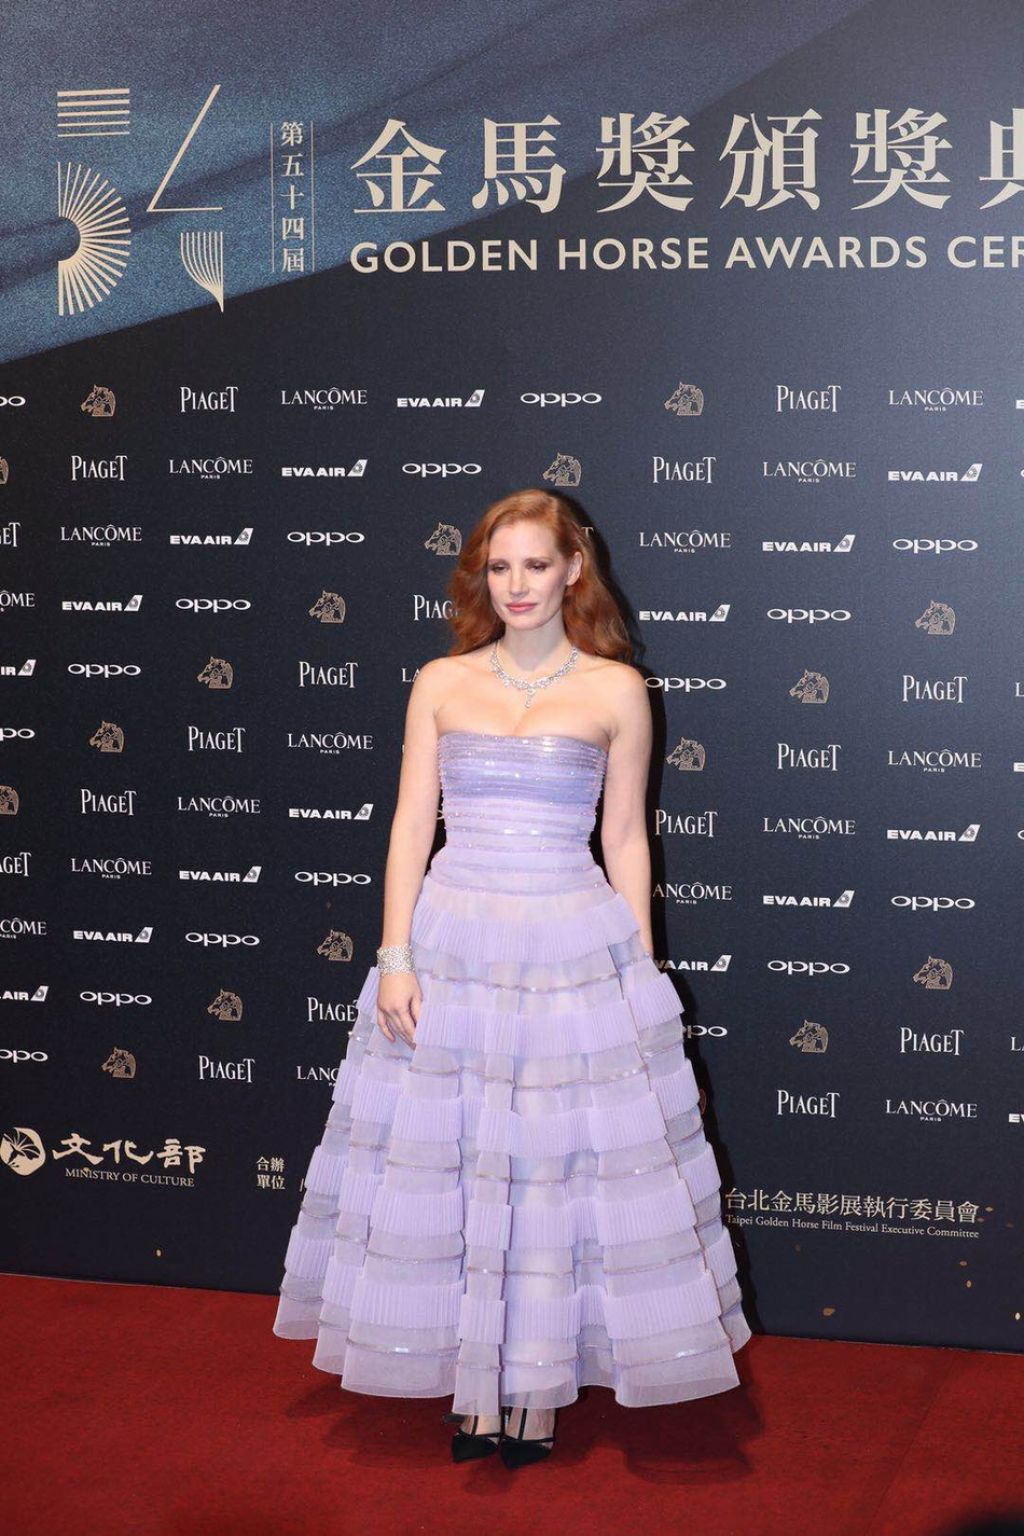 http://celebmafia.com/wp-content/uploads/2017/11/jessica-chastain-golden-horse-awards-2017-in-taipei-4.jpg